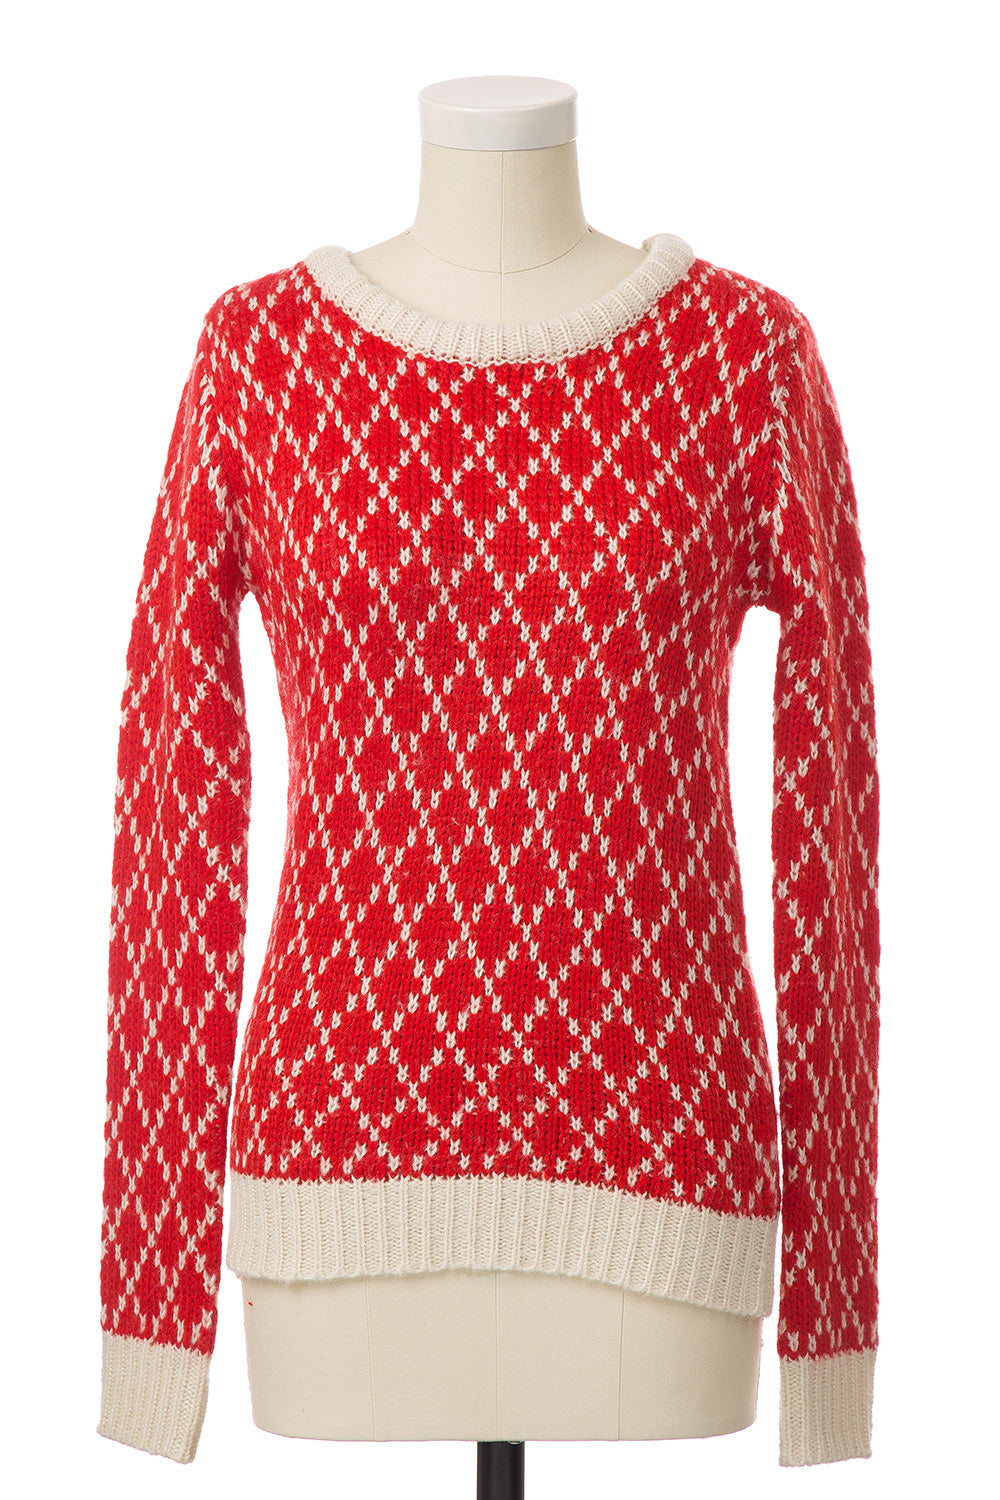 Type 1 Candy Cane Sweater